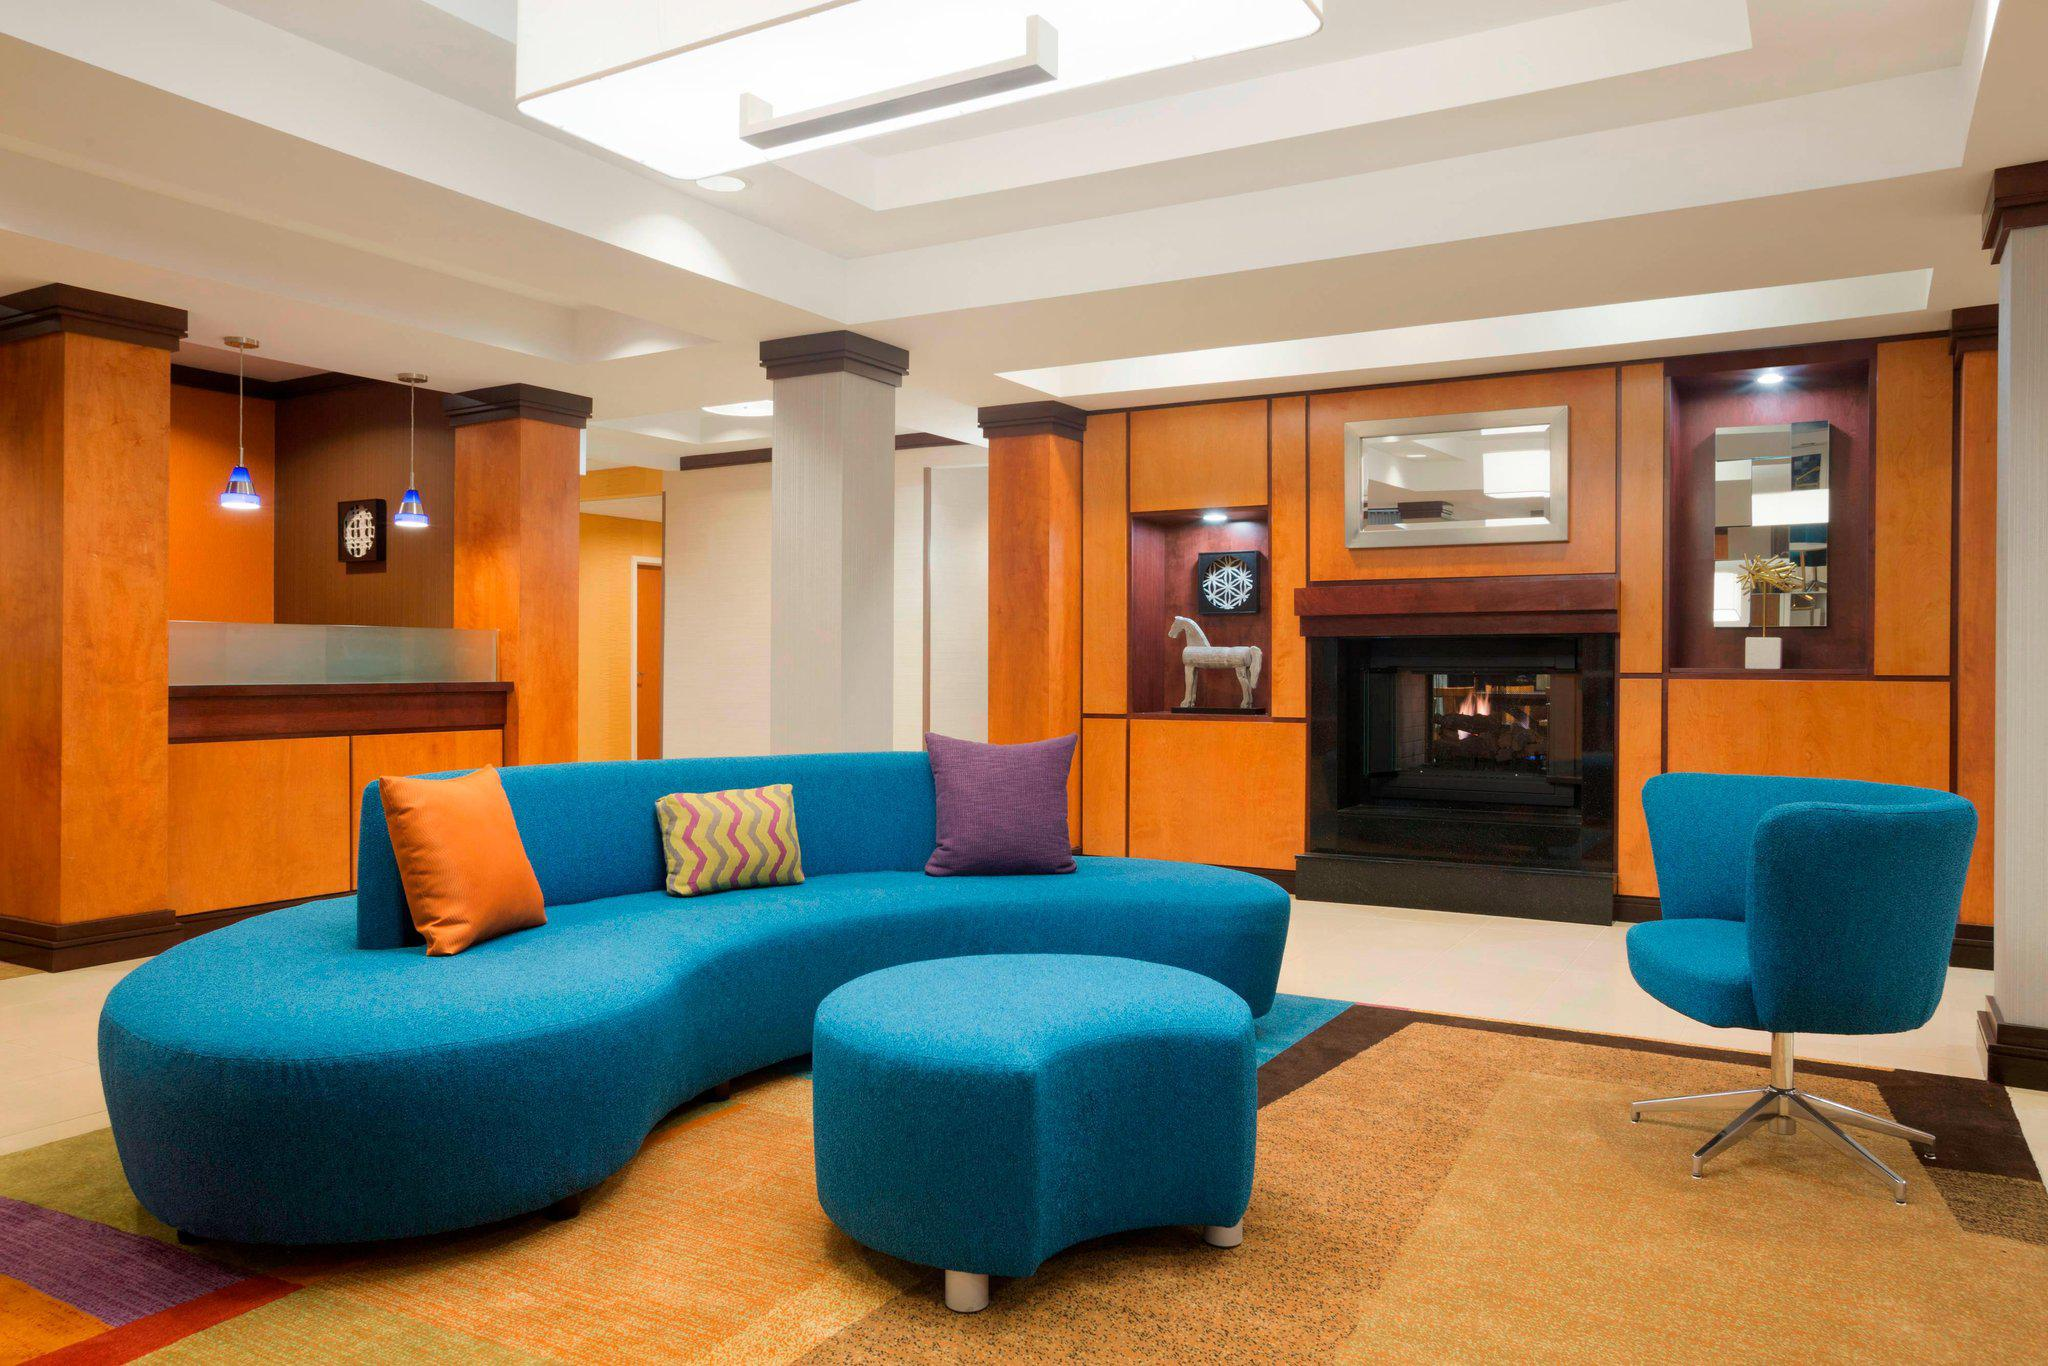 Fairfield Inn & Suites by Marriott Columbia Northeast